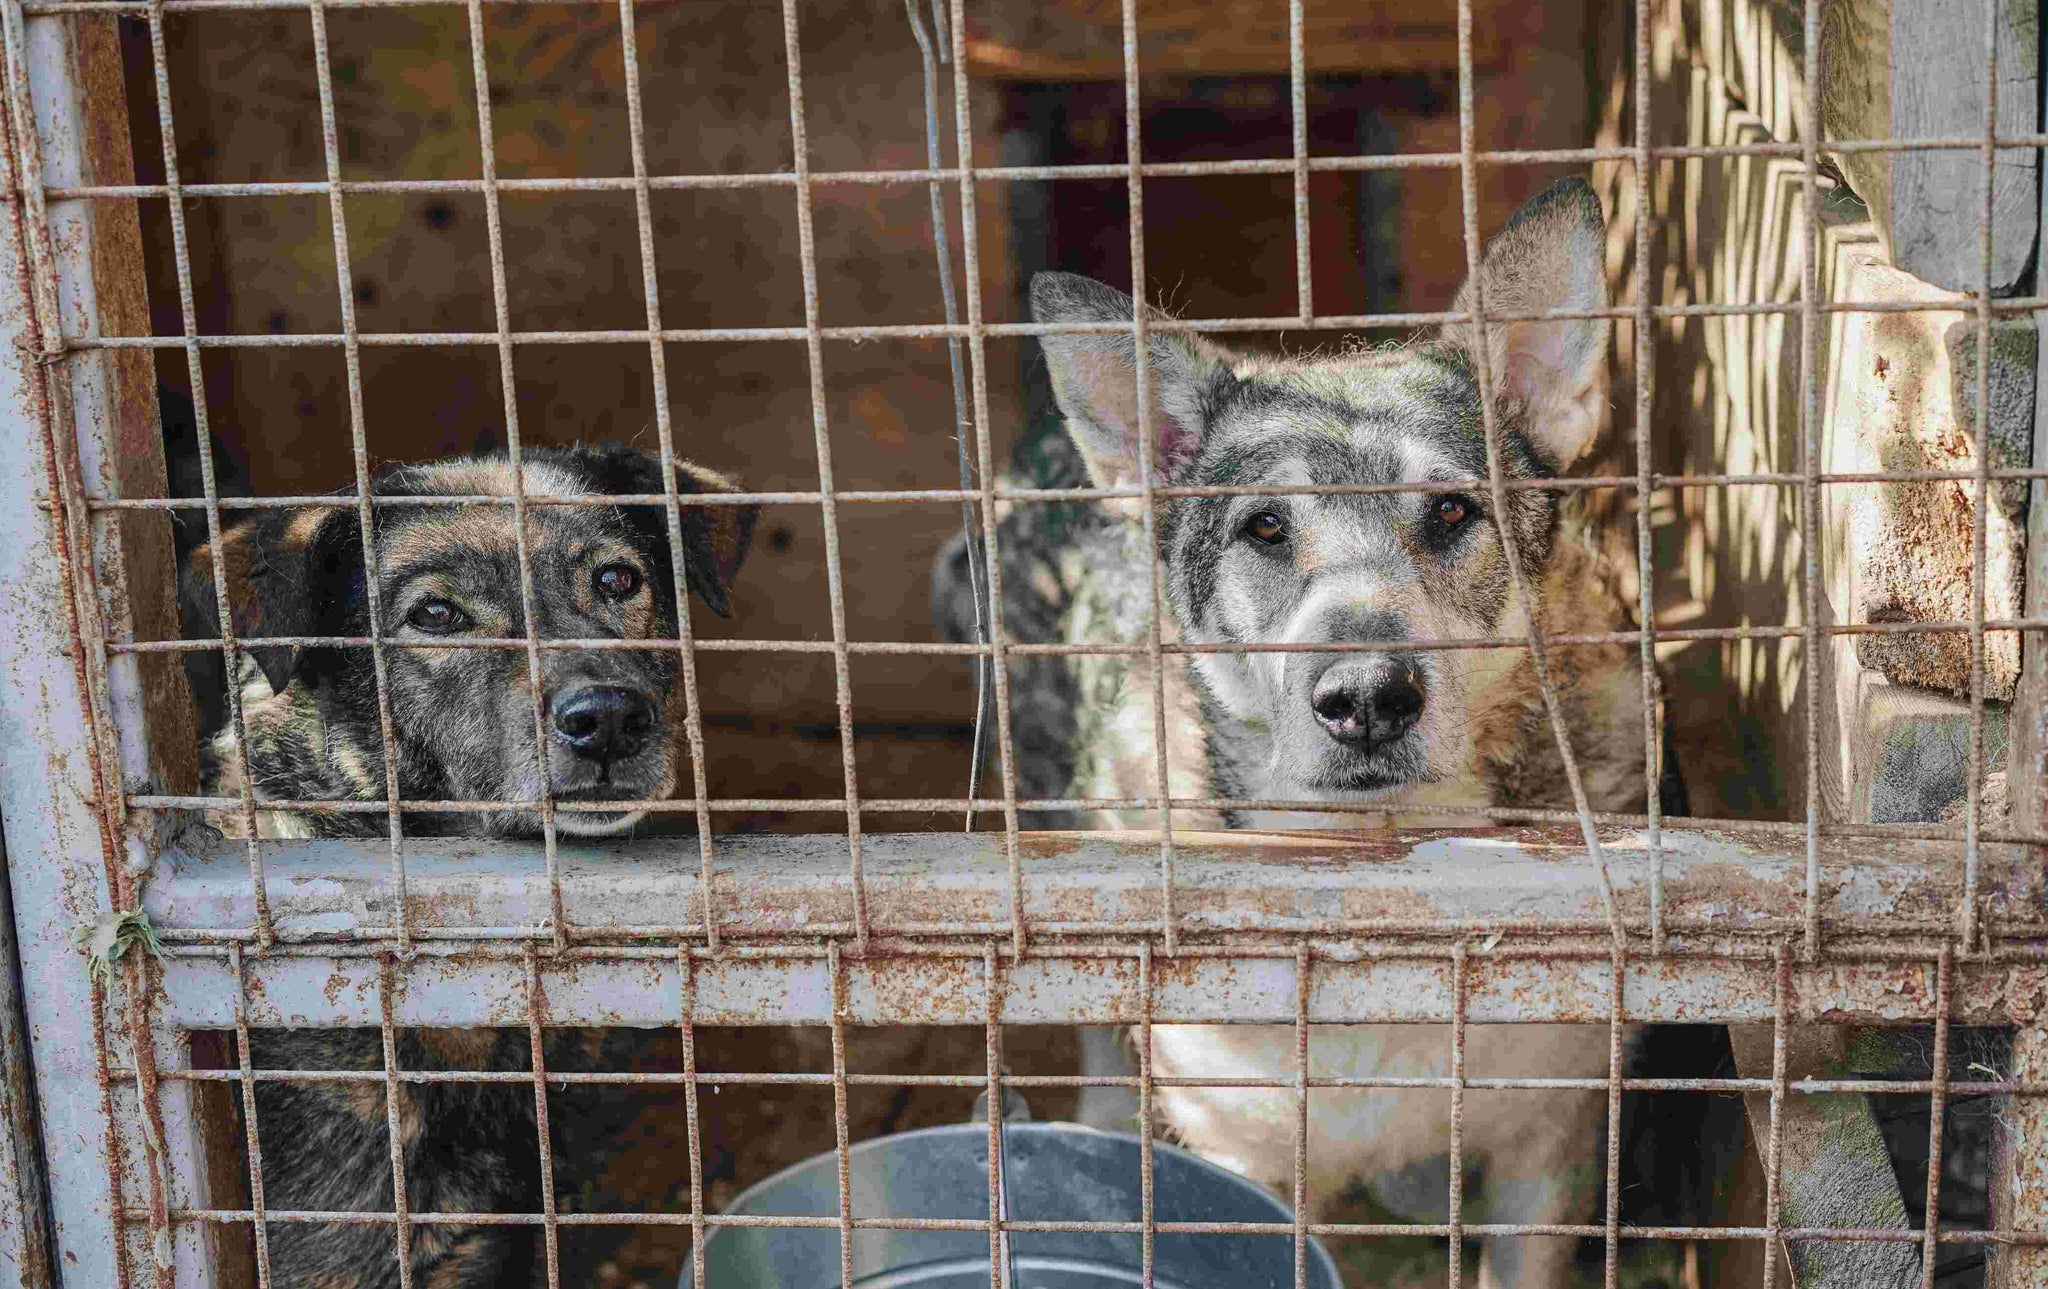 The Cost of Operating Animal Shelters